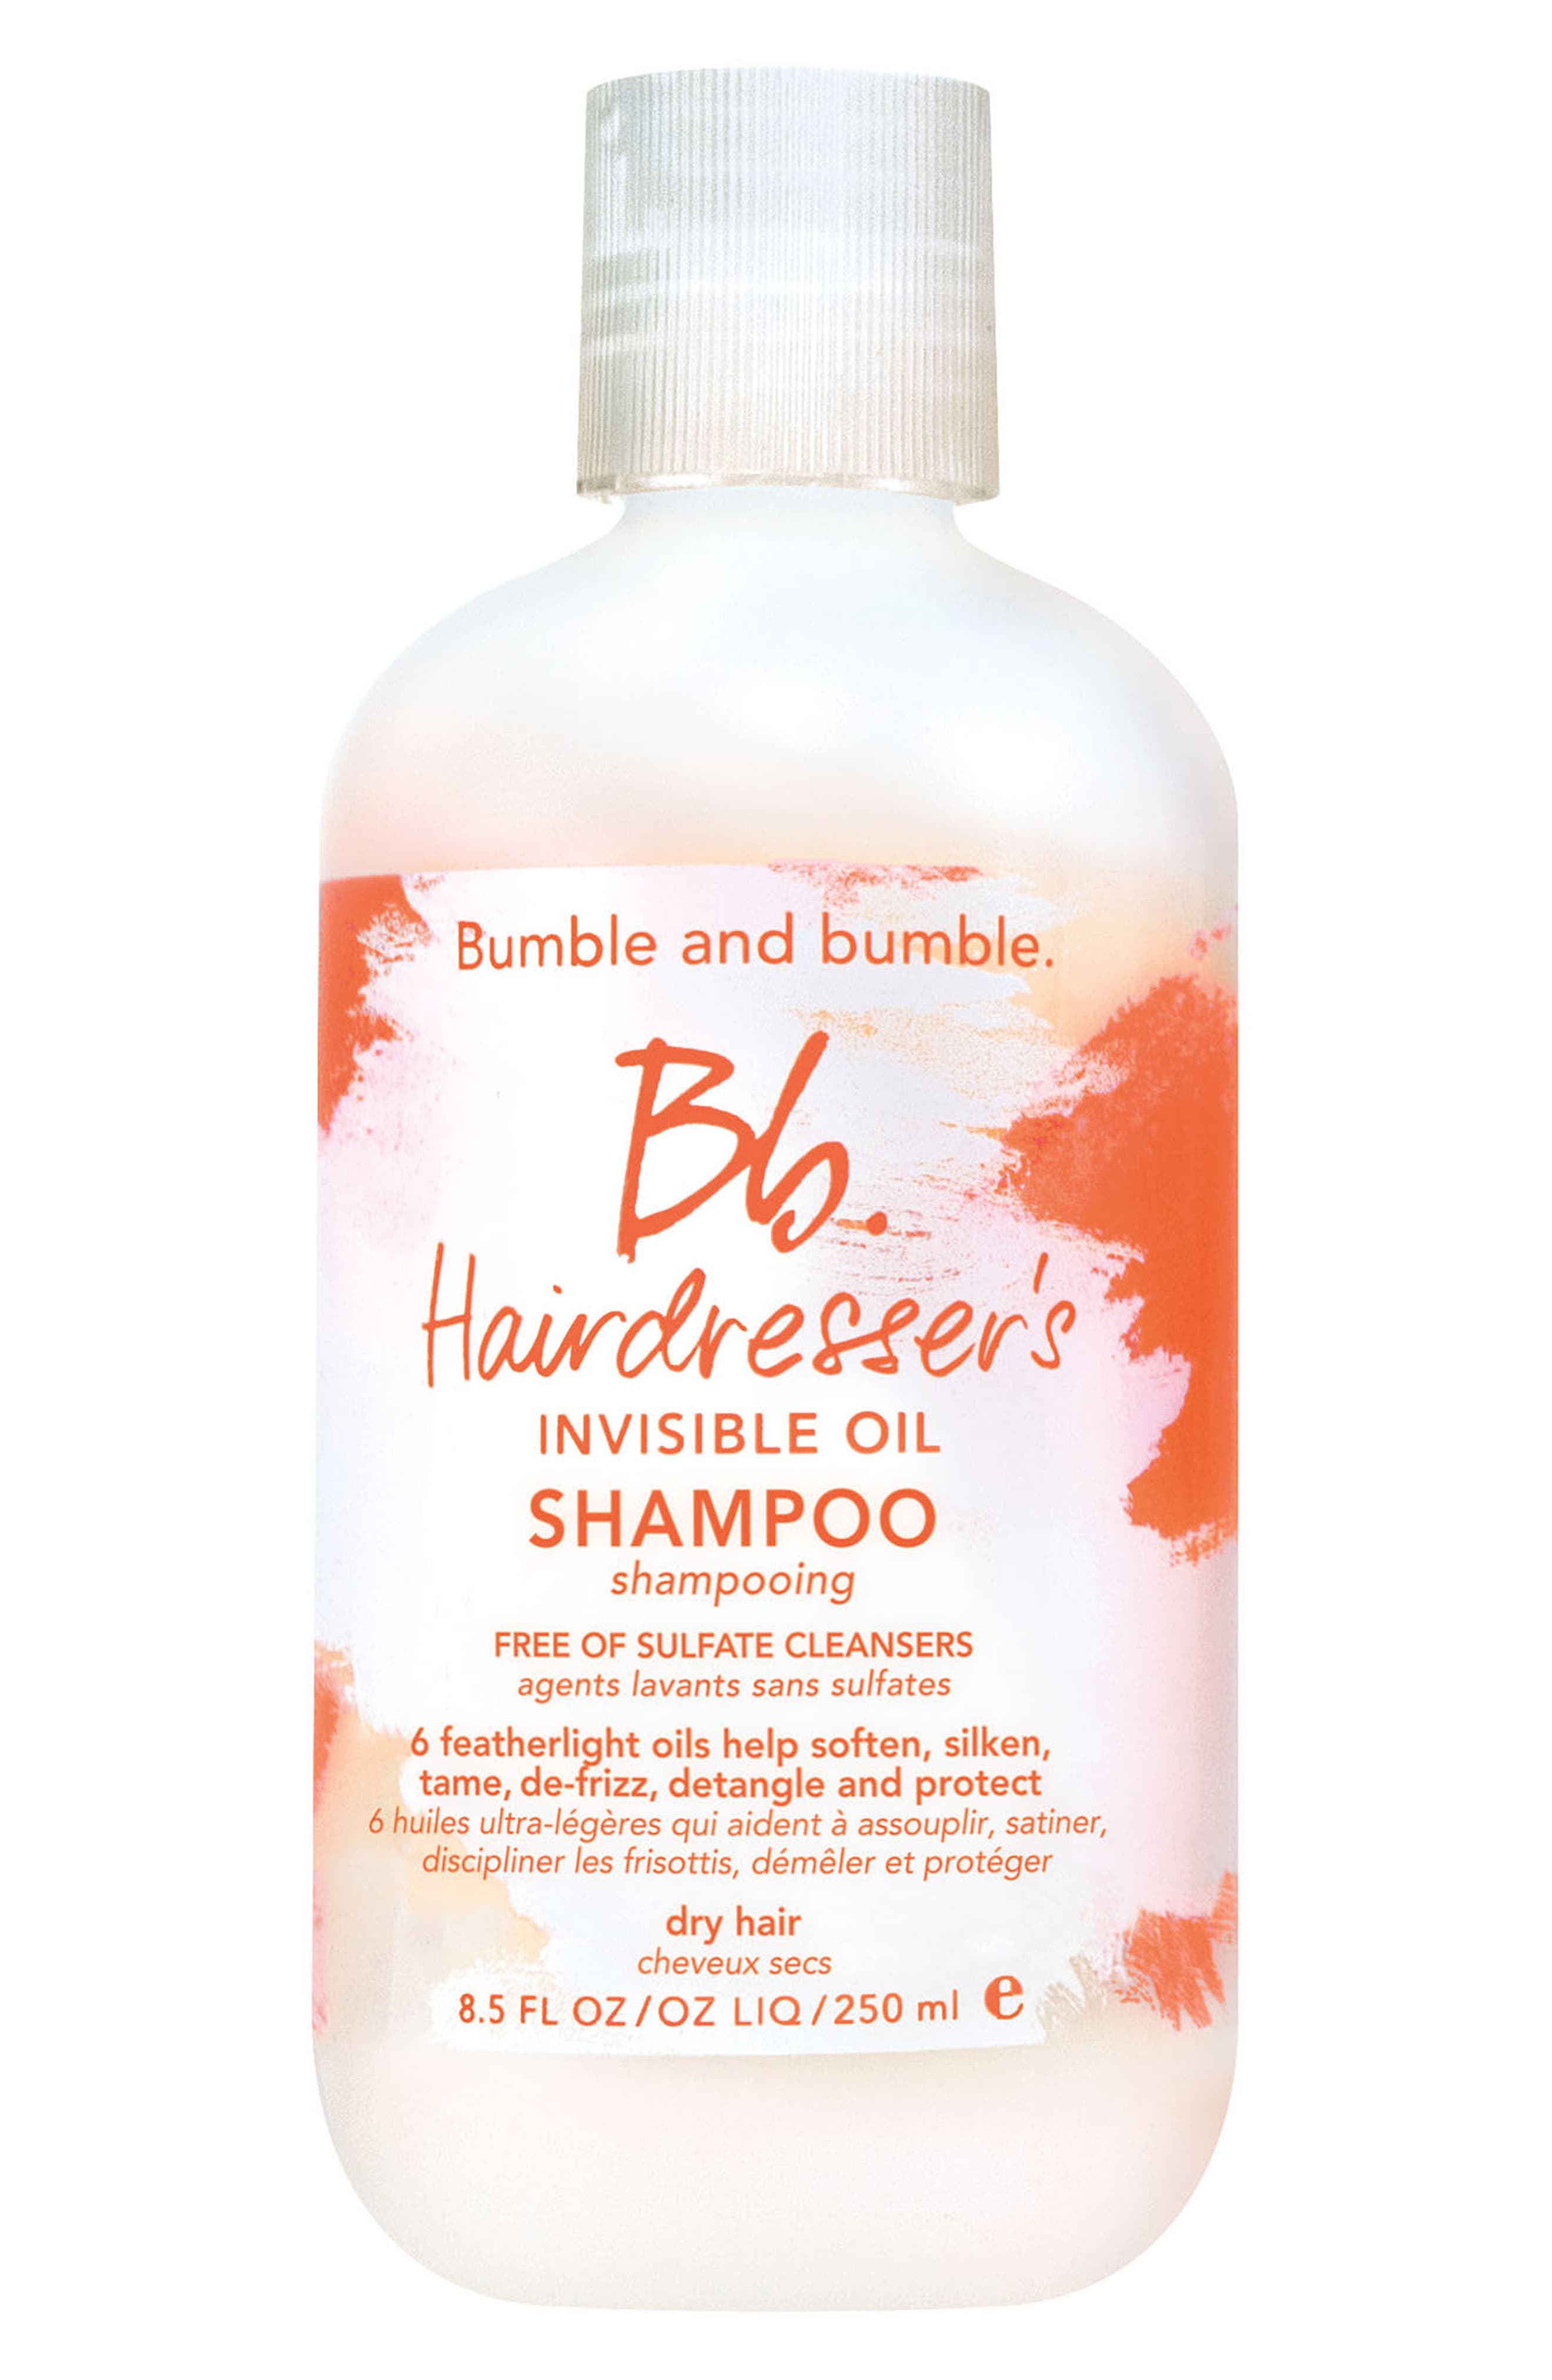 Main Image - Bumble and bumble Hairdresser's Invisible Oil Shampoo